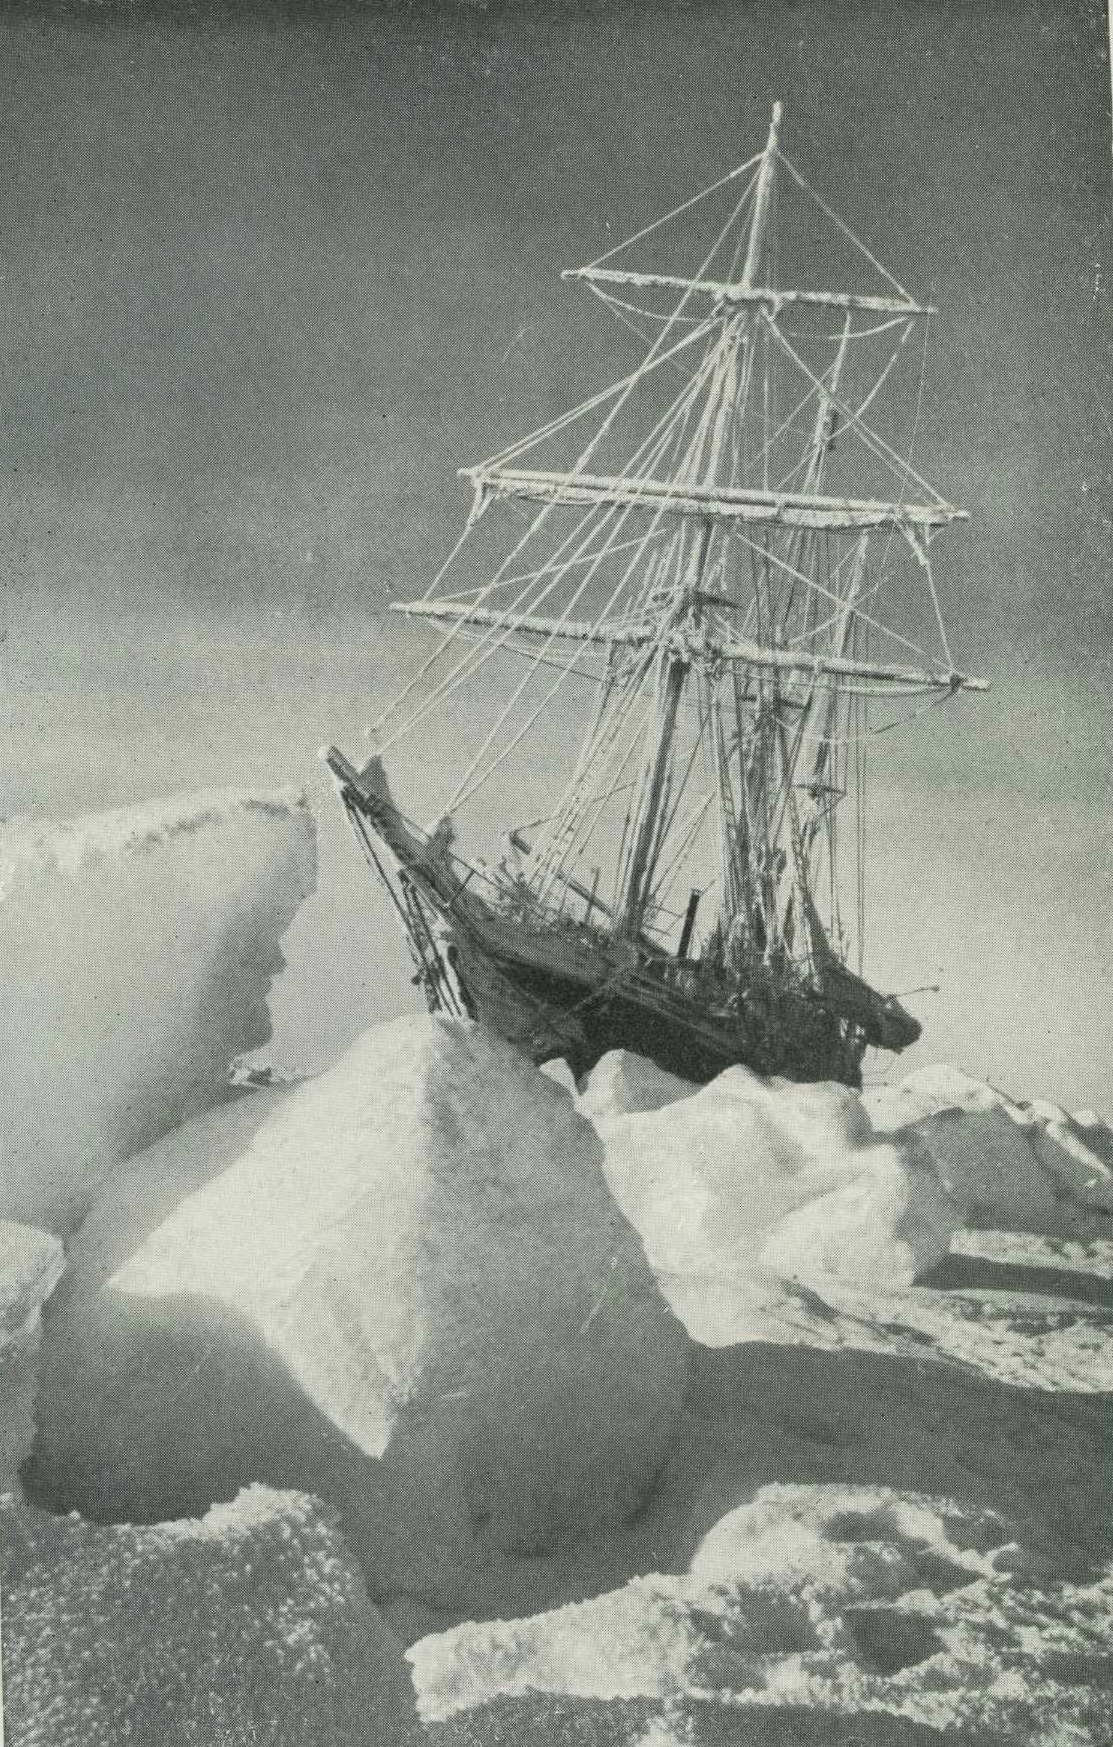 Endurance (trapped In Ice)